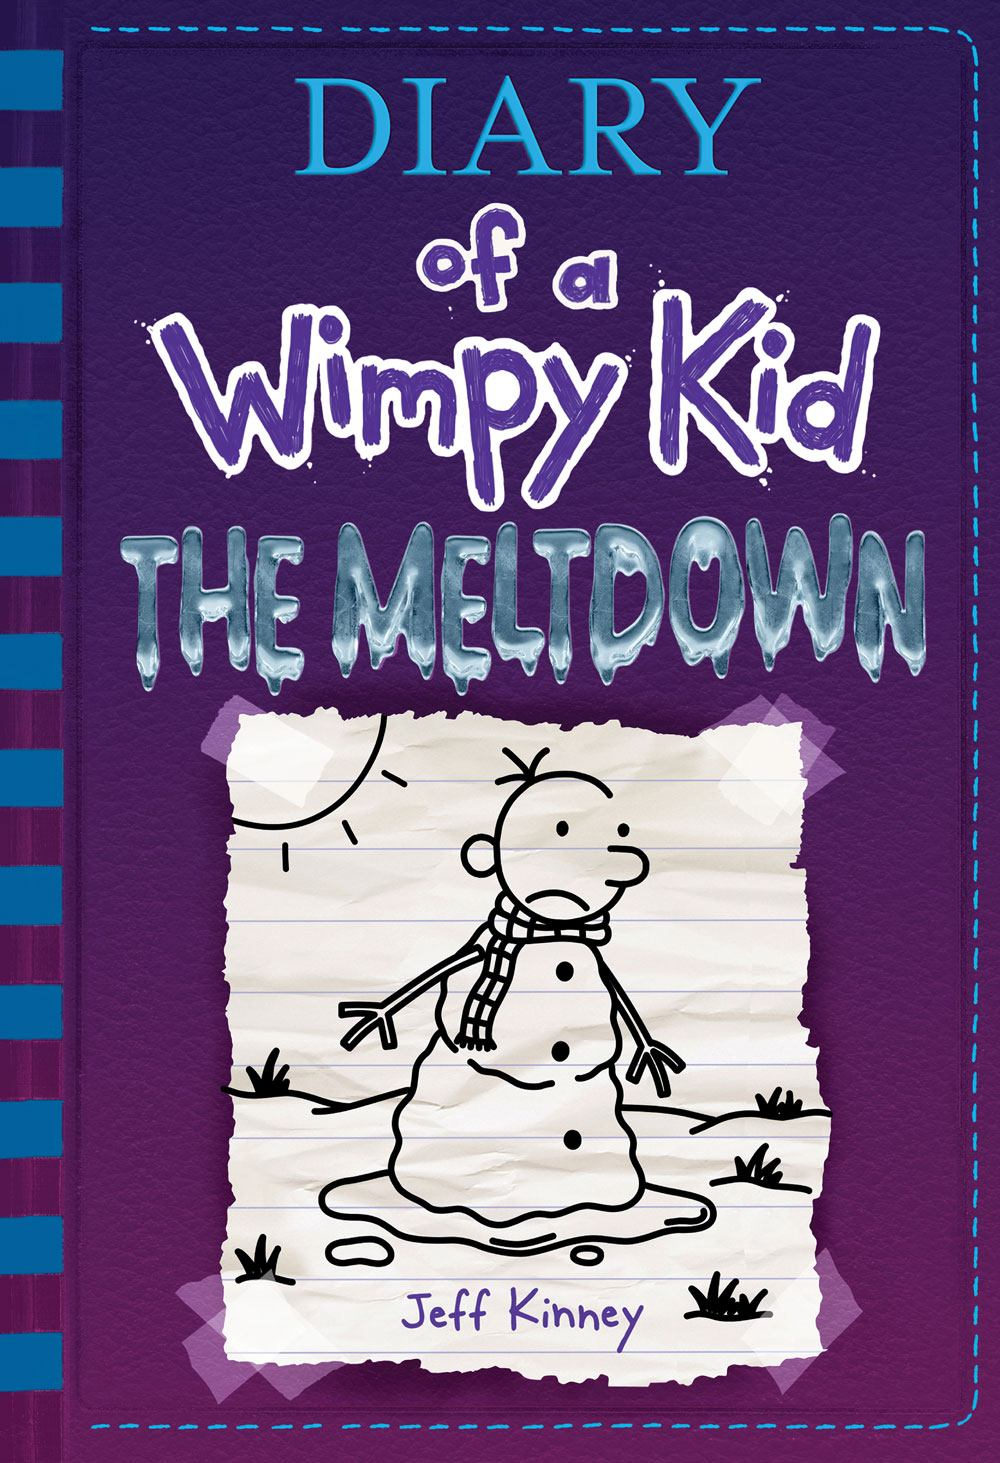 book cover of Diary of a Wimpy Kid The Meltdown. Snowman melting in sun.